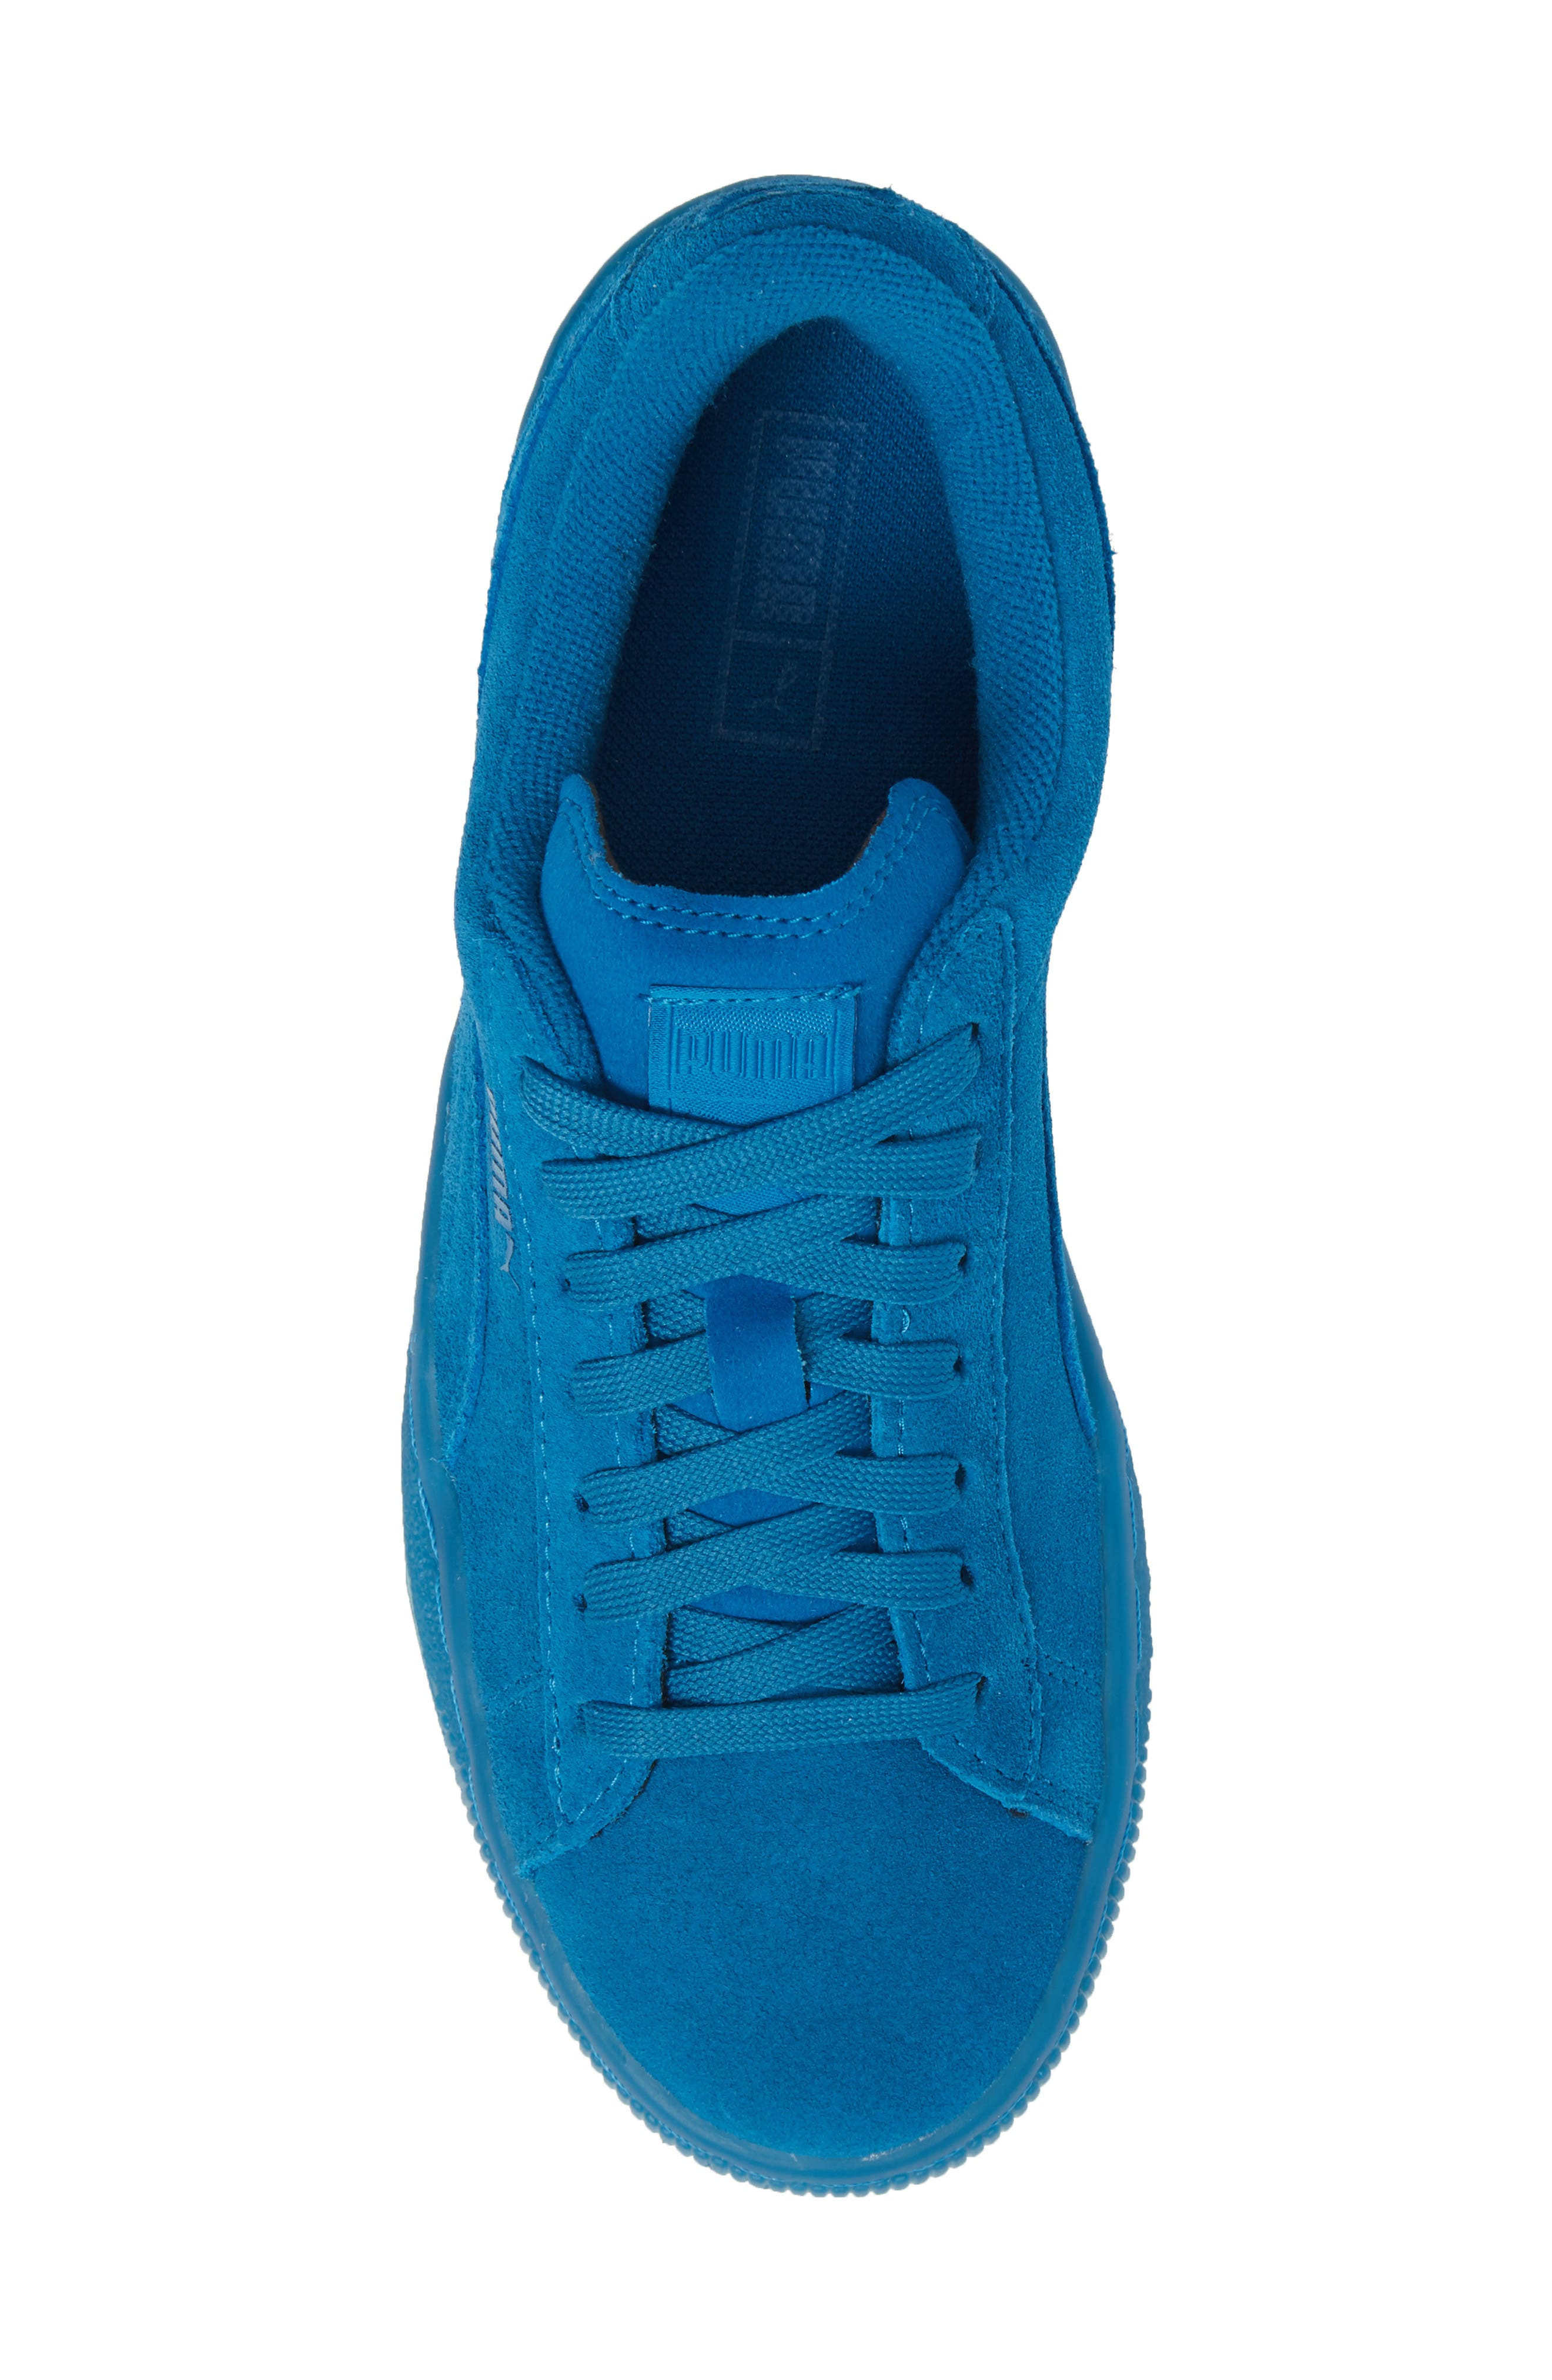 'Suede Iced' Sneaker,                             Alternate thumbnail 5, color,                             460